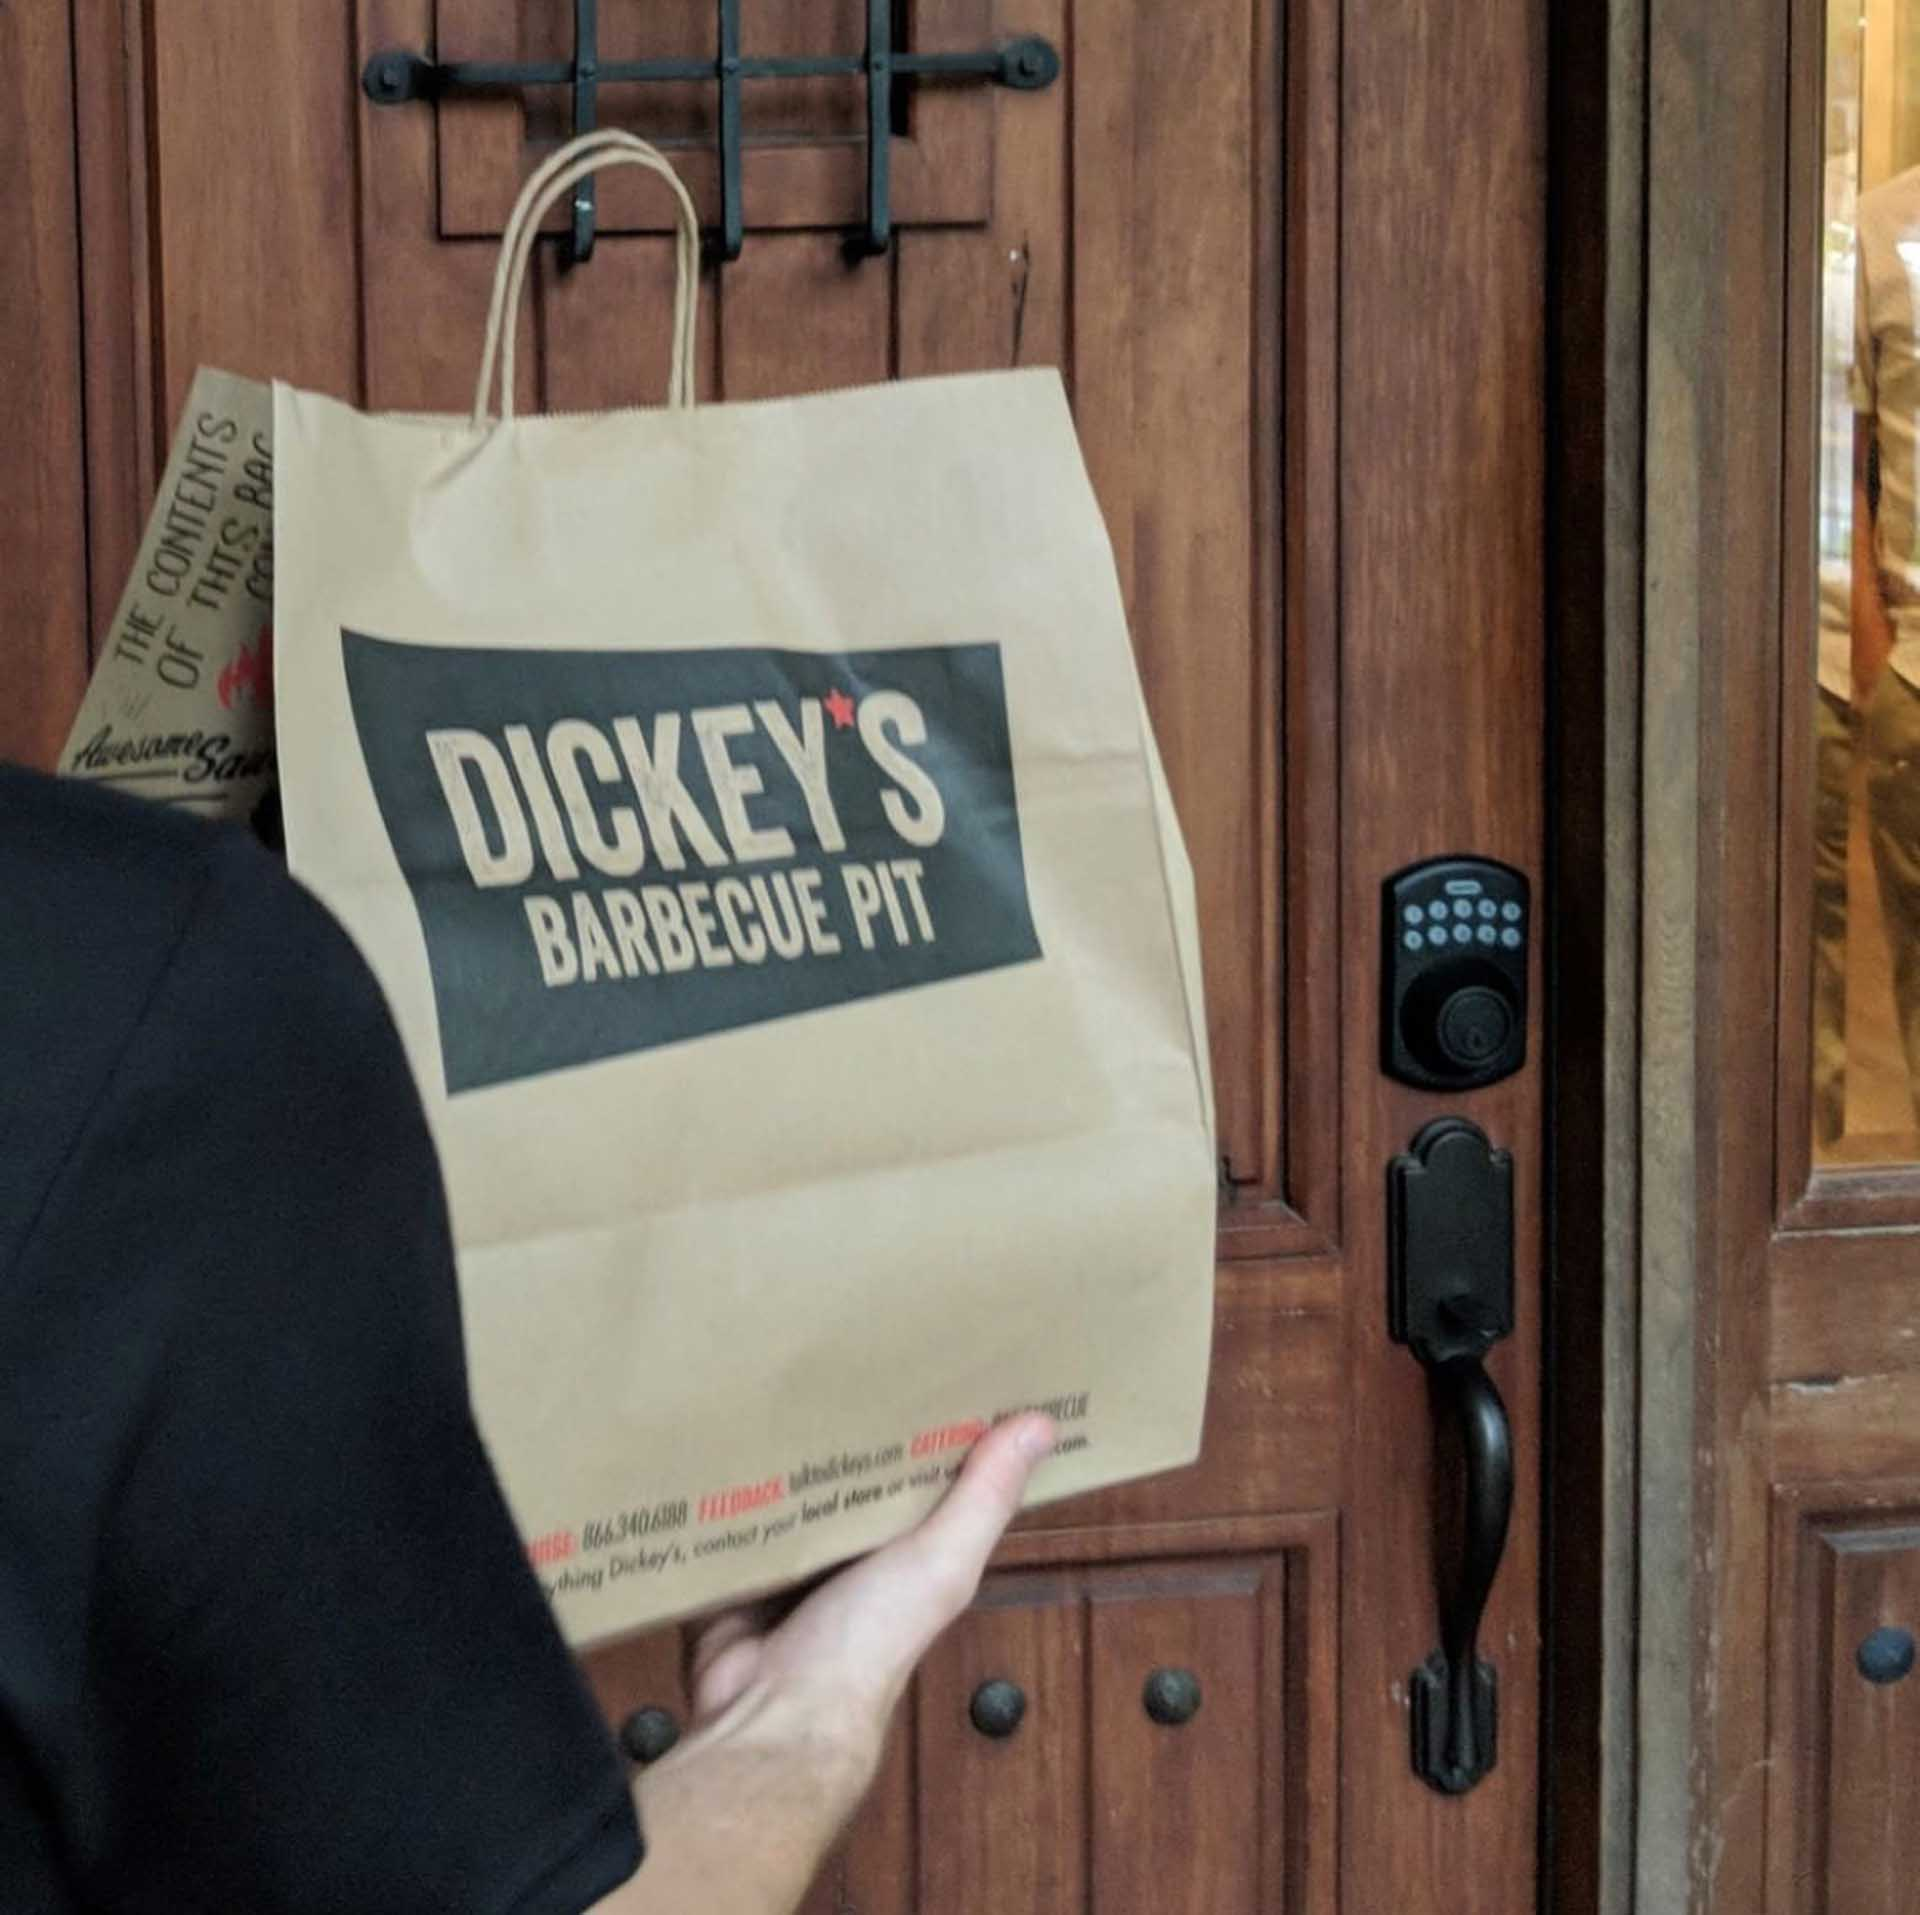 Restaurant News Release: Free Delivery Through March at Dickey's Barbecue Pit